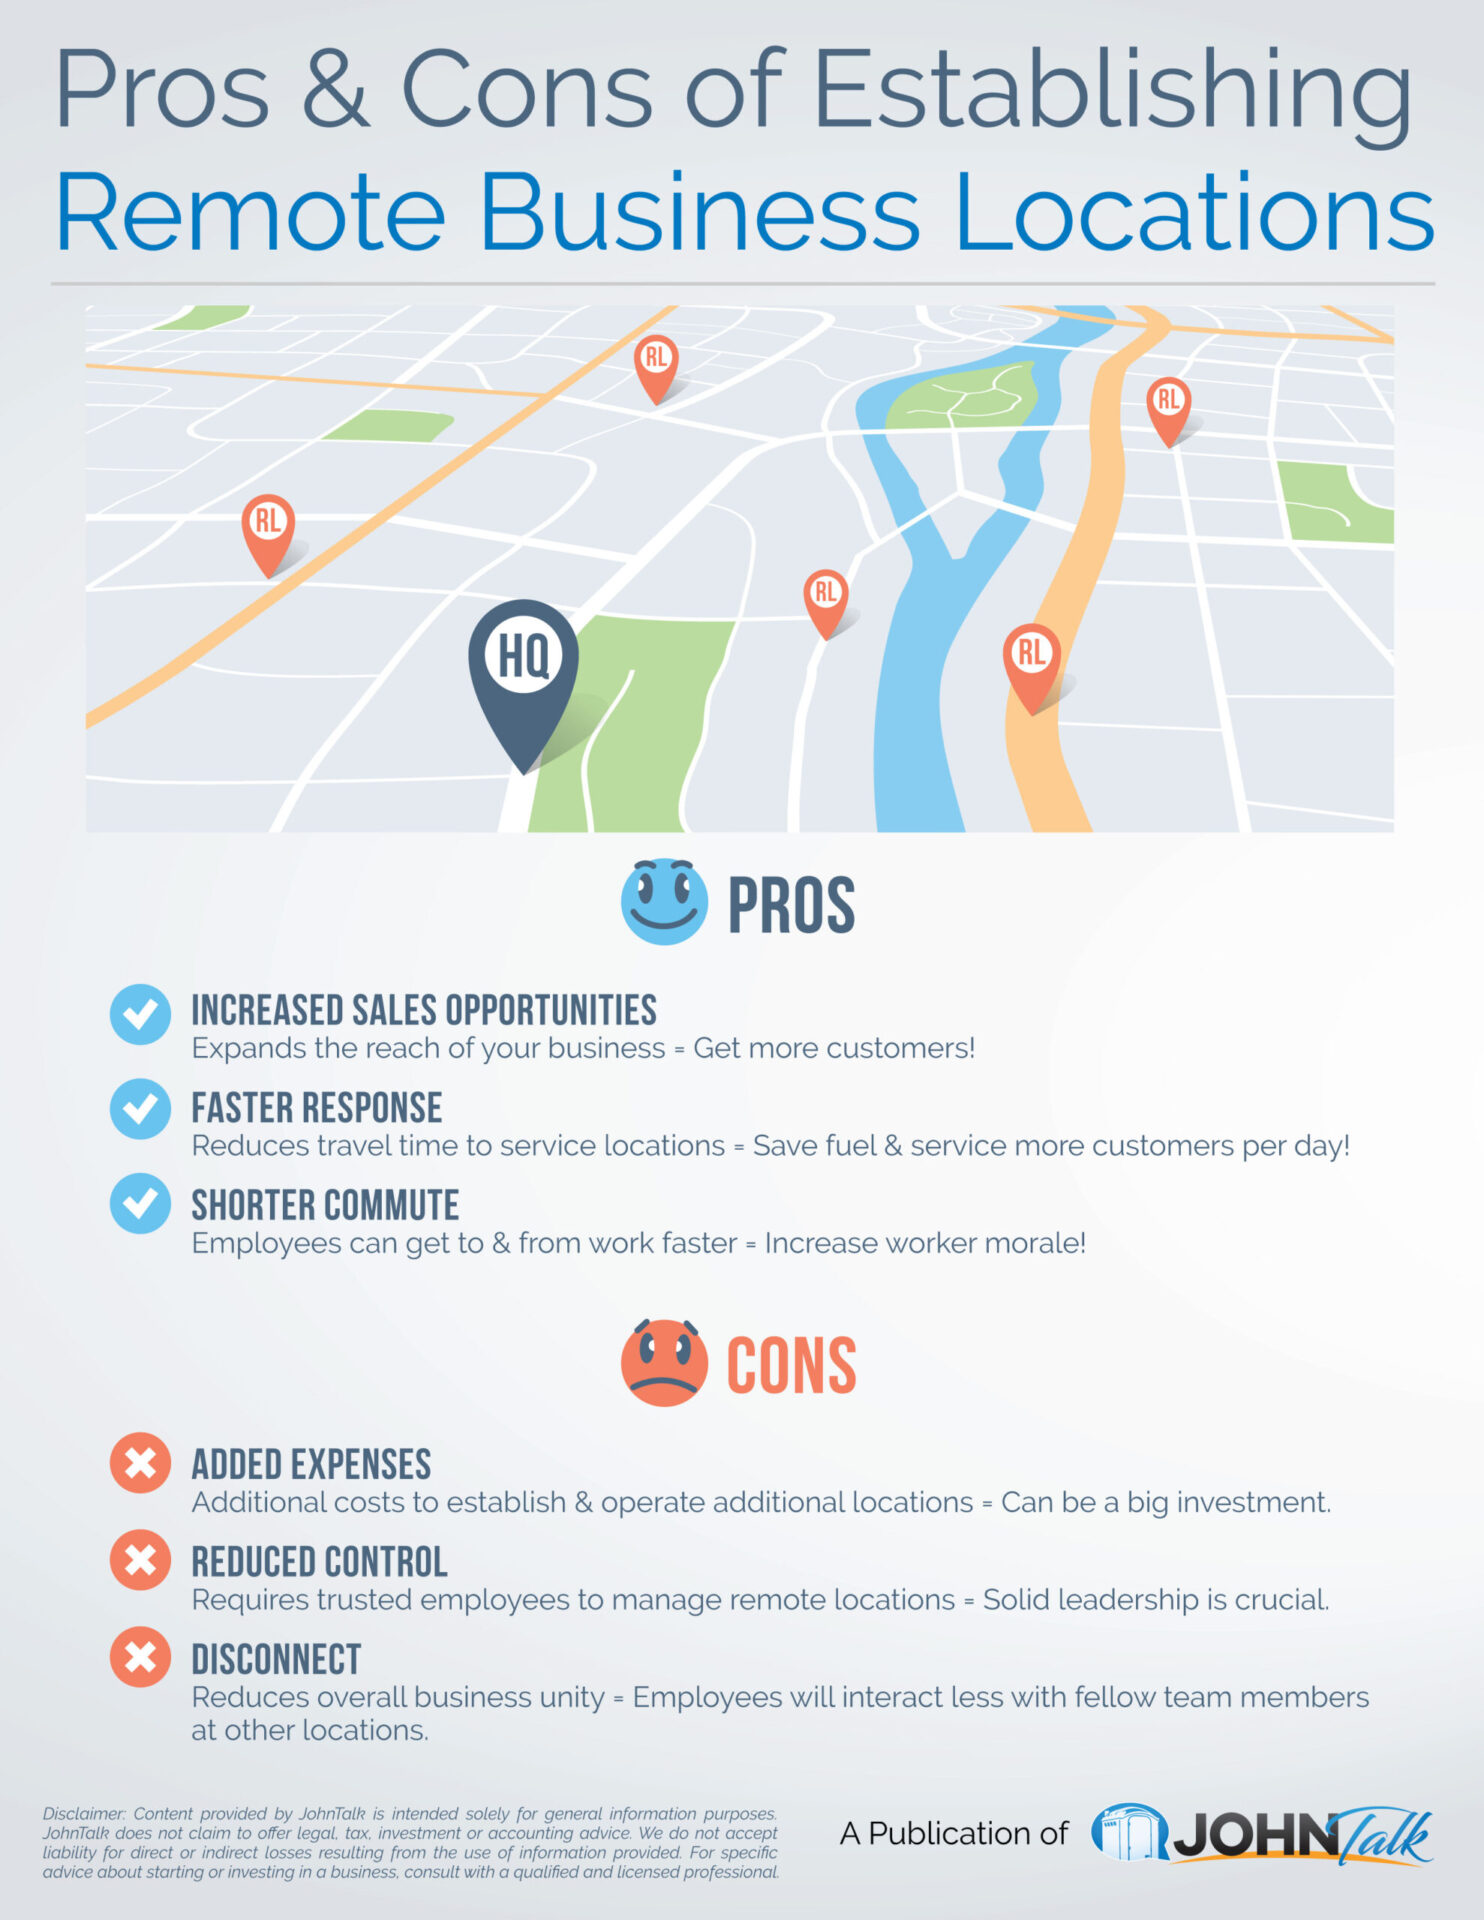 Pros & Cons of Establishing Remote Business Locations